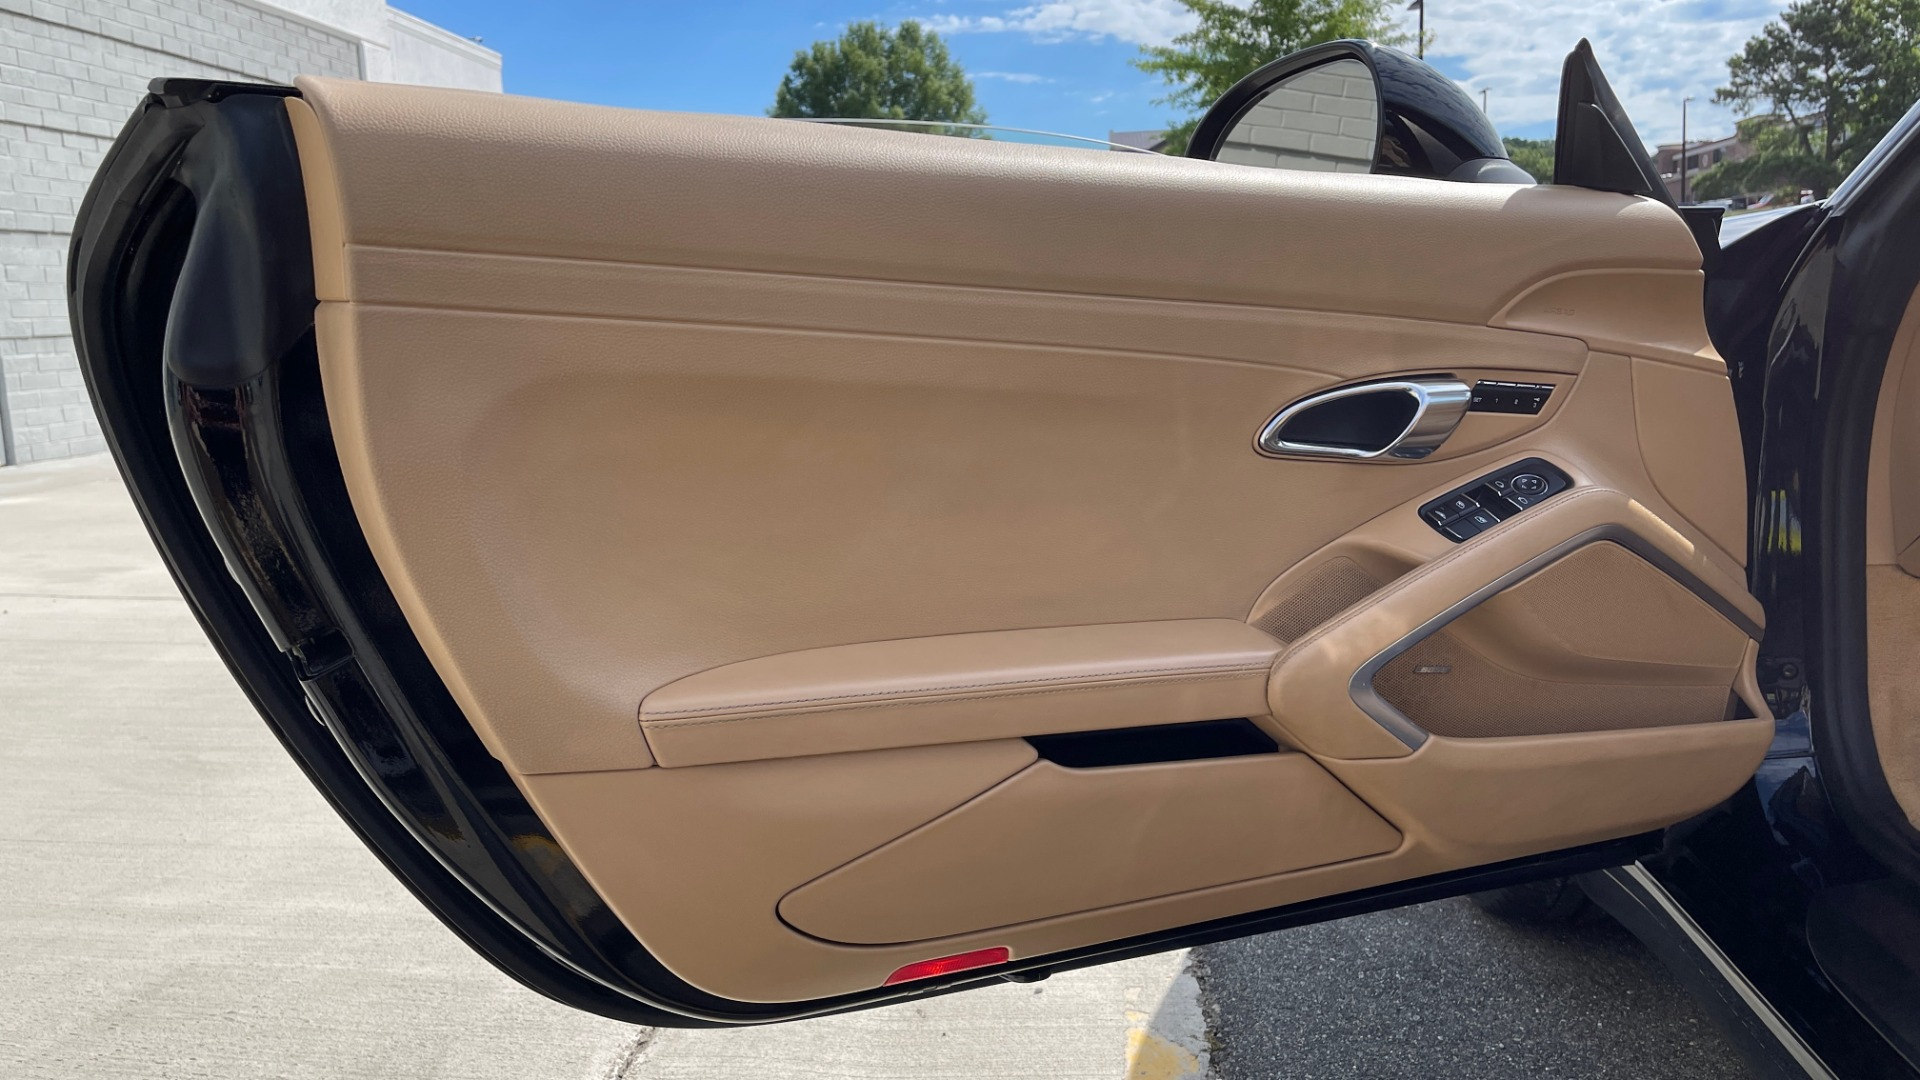 Used 2013 Porsche 911 CARRERA CABRIOLET / PDK / NAV / BOSE / HTD STS / PDLS for sale Sold at Formula Imports in Charlotte NC 28227 43